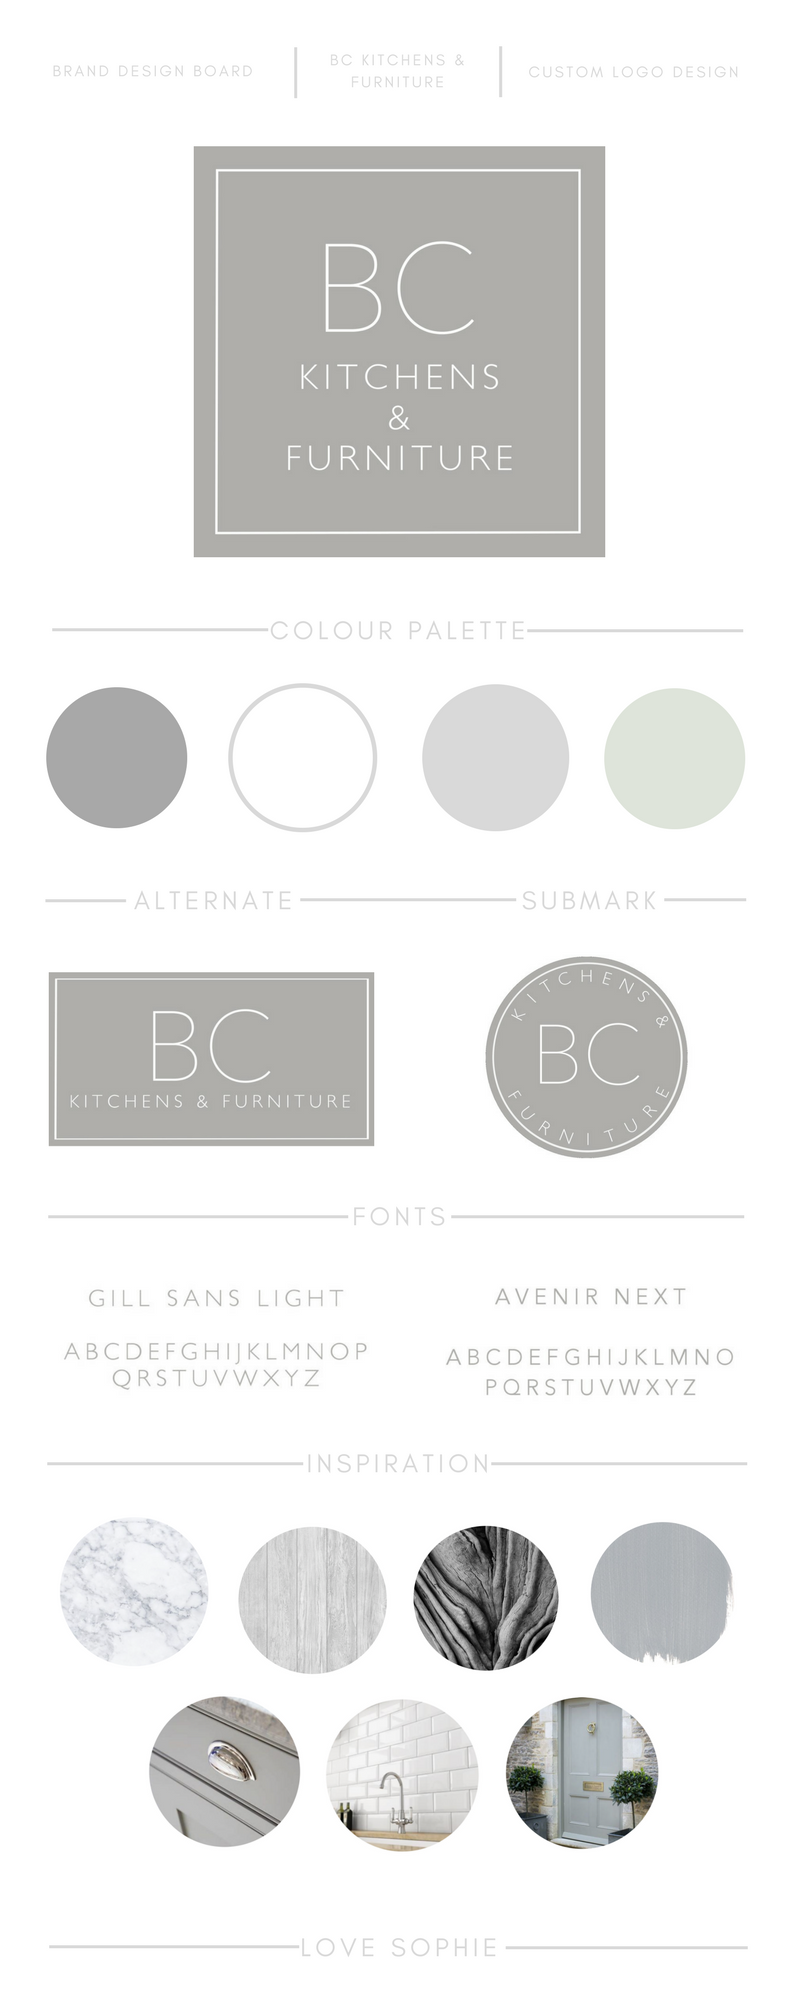 Lovely simple branding for b c kitchens u furniture small business